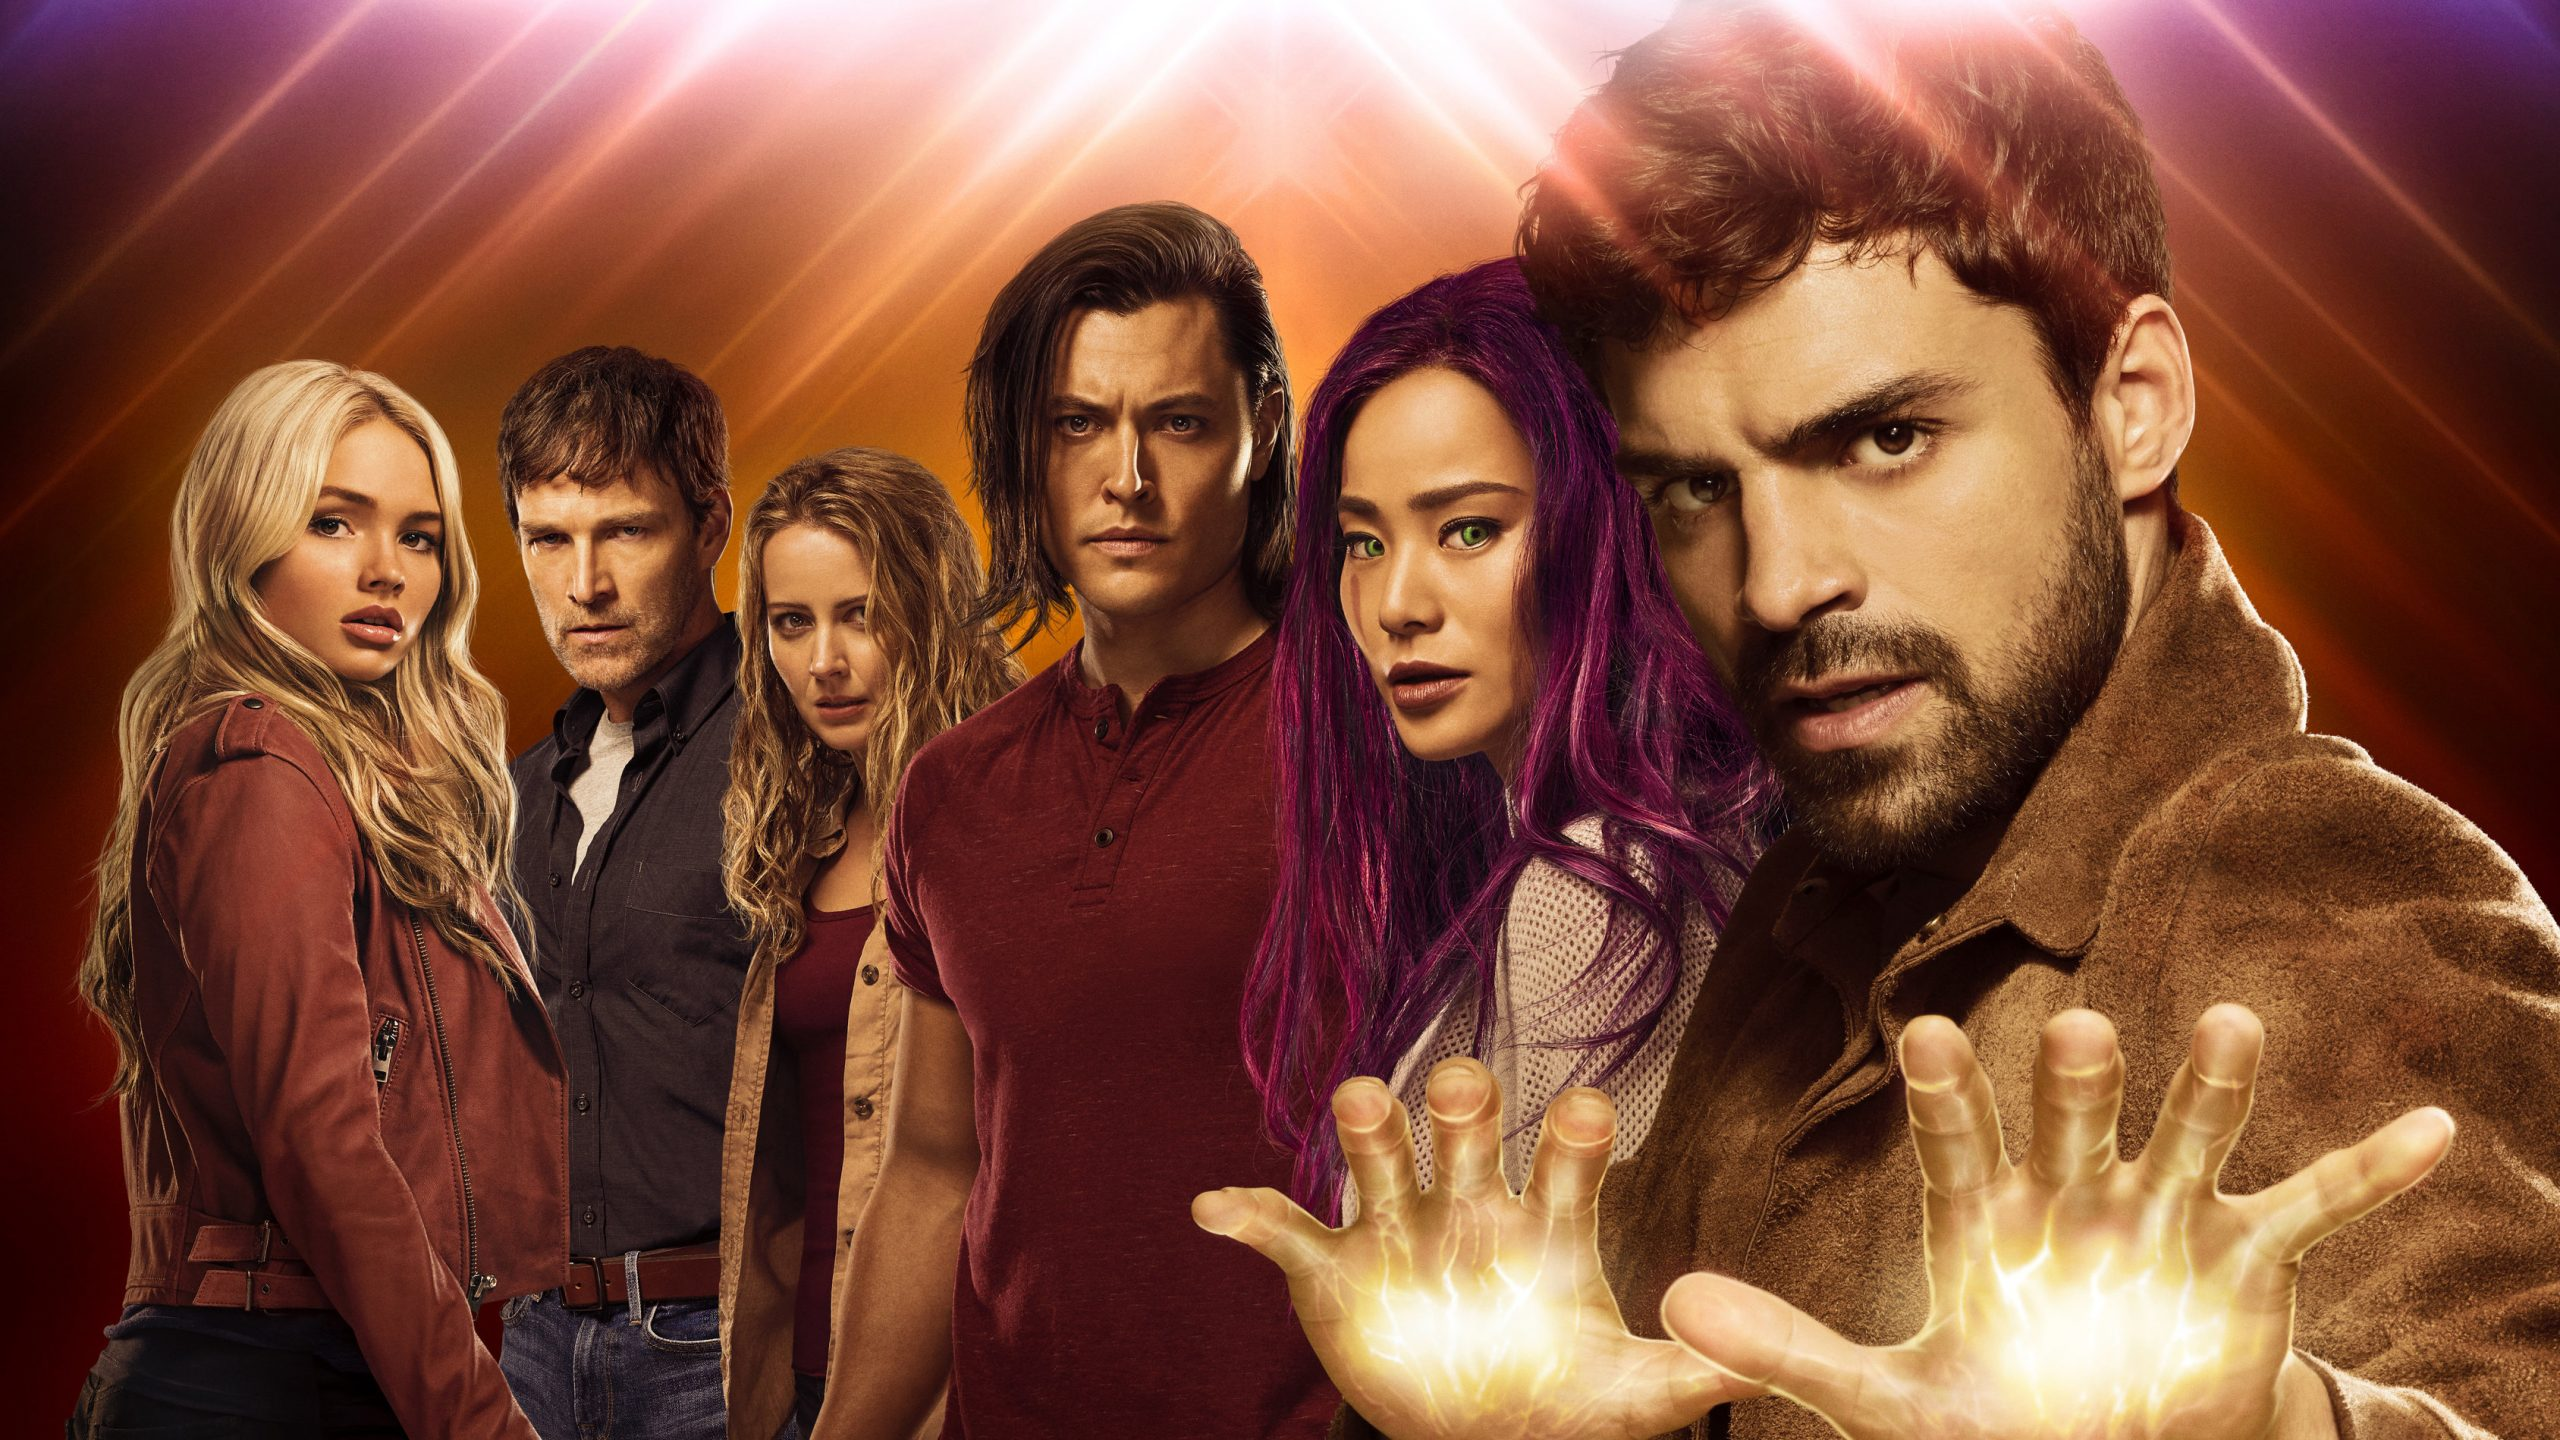 Season 2 of the gifted